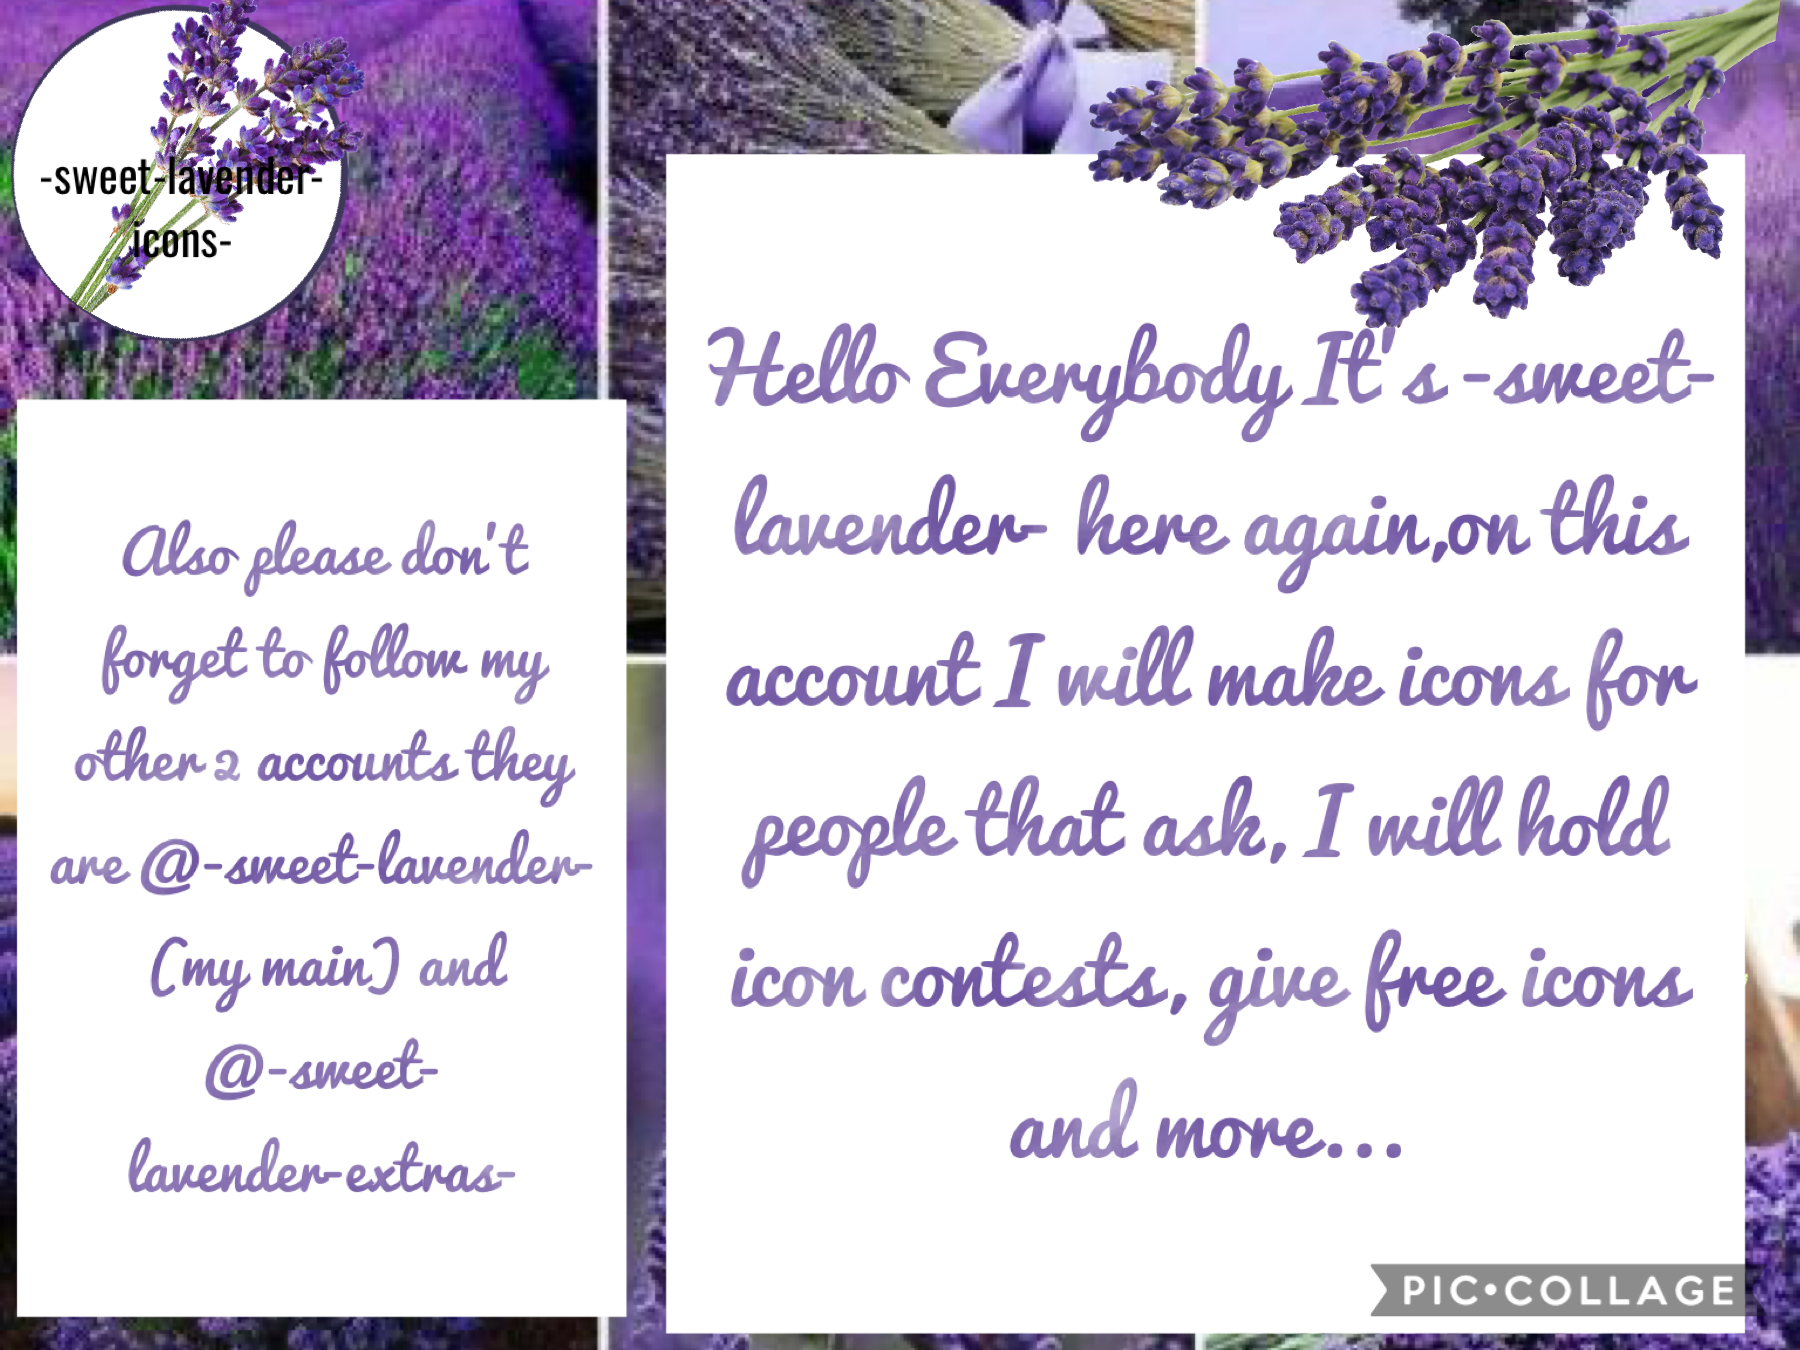 Jan 6,2021 tap🟣⚪️⬇️ This is my icons acc. Pls follow.  Main:@-sweet-lavender- Extras:@-sweet-lavender-extras- Thank you!😁 See you all soon!♥️